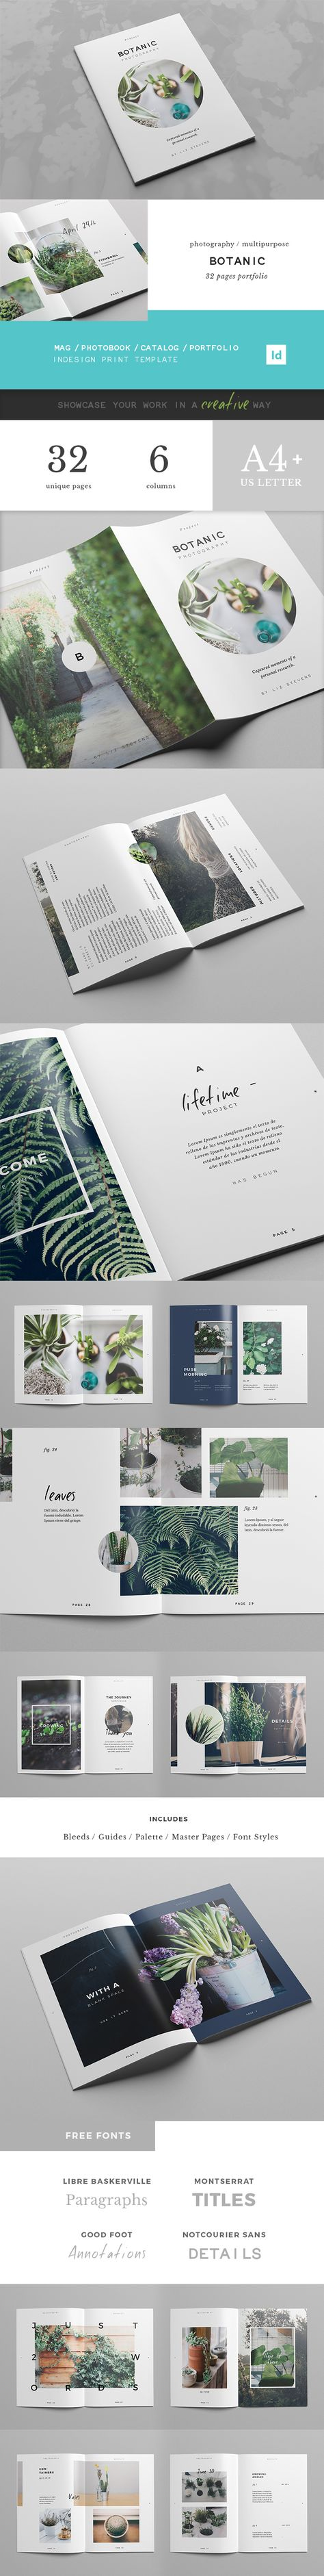 Portfolios help you to put your best work out in the open, regardless of whether you're trying to attract new clients for your business or highlight pieces you're proud of for readers, here are 25 Really Awesome Portfolio Brochure Templates that will help you to showcase your works.